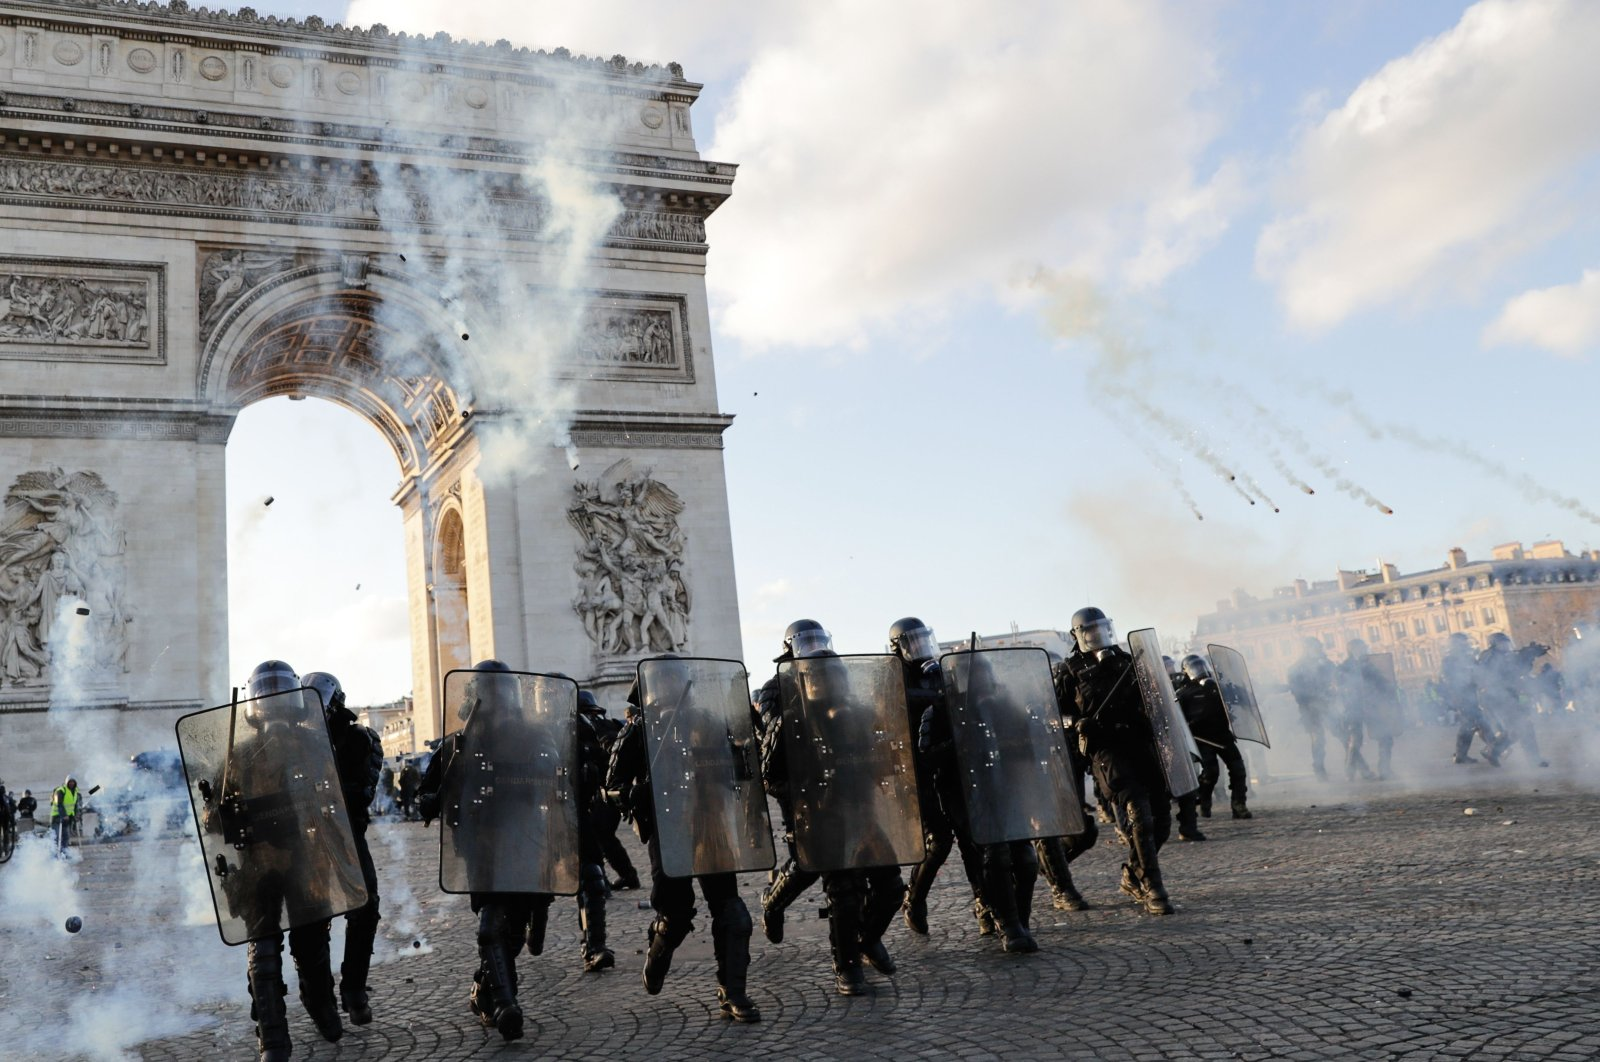 Riot police officers charge using tear gas canister at the Arc de Triomphe on the Place de l'Etoile, Paris, March 16, 2019. (AFP Photo)